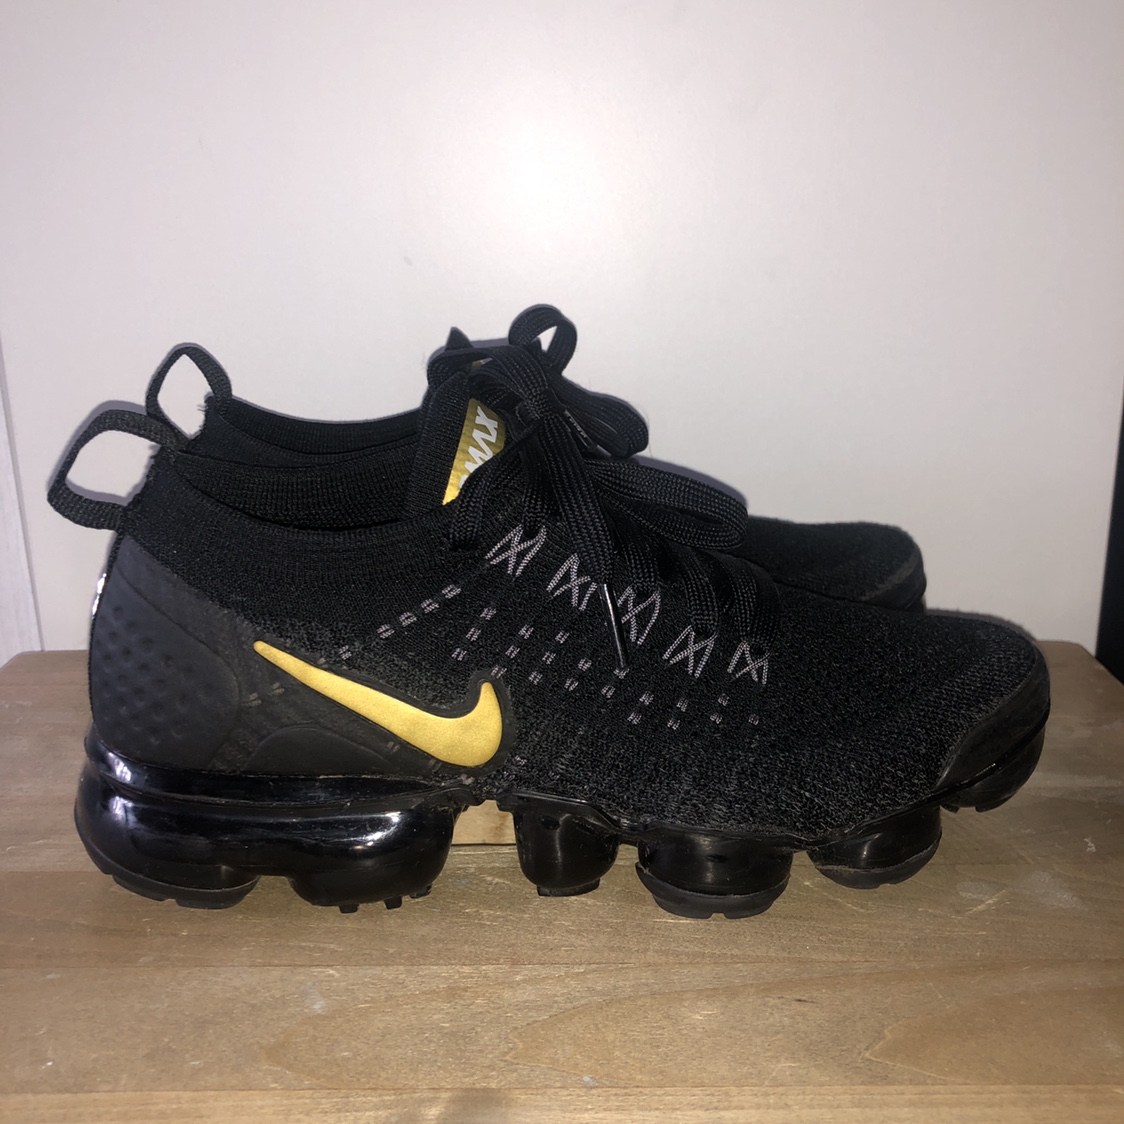 Black and gold Nike vapormax, size 3